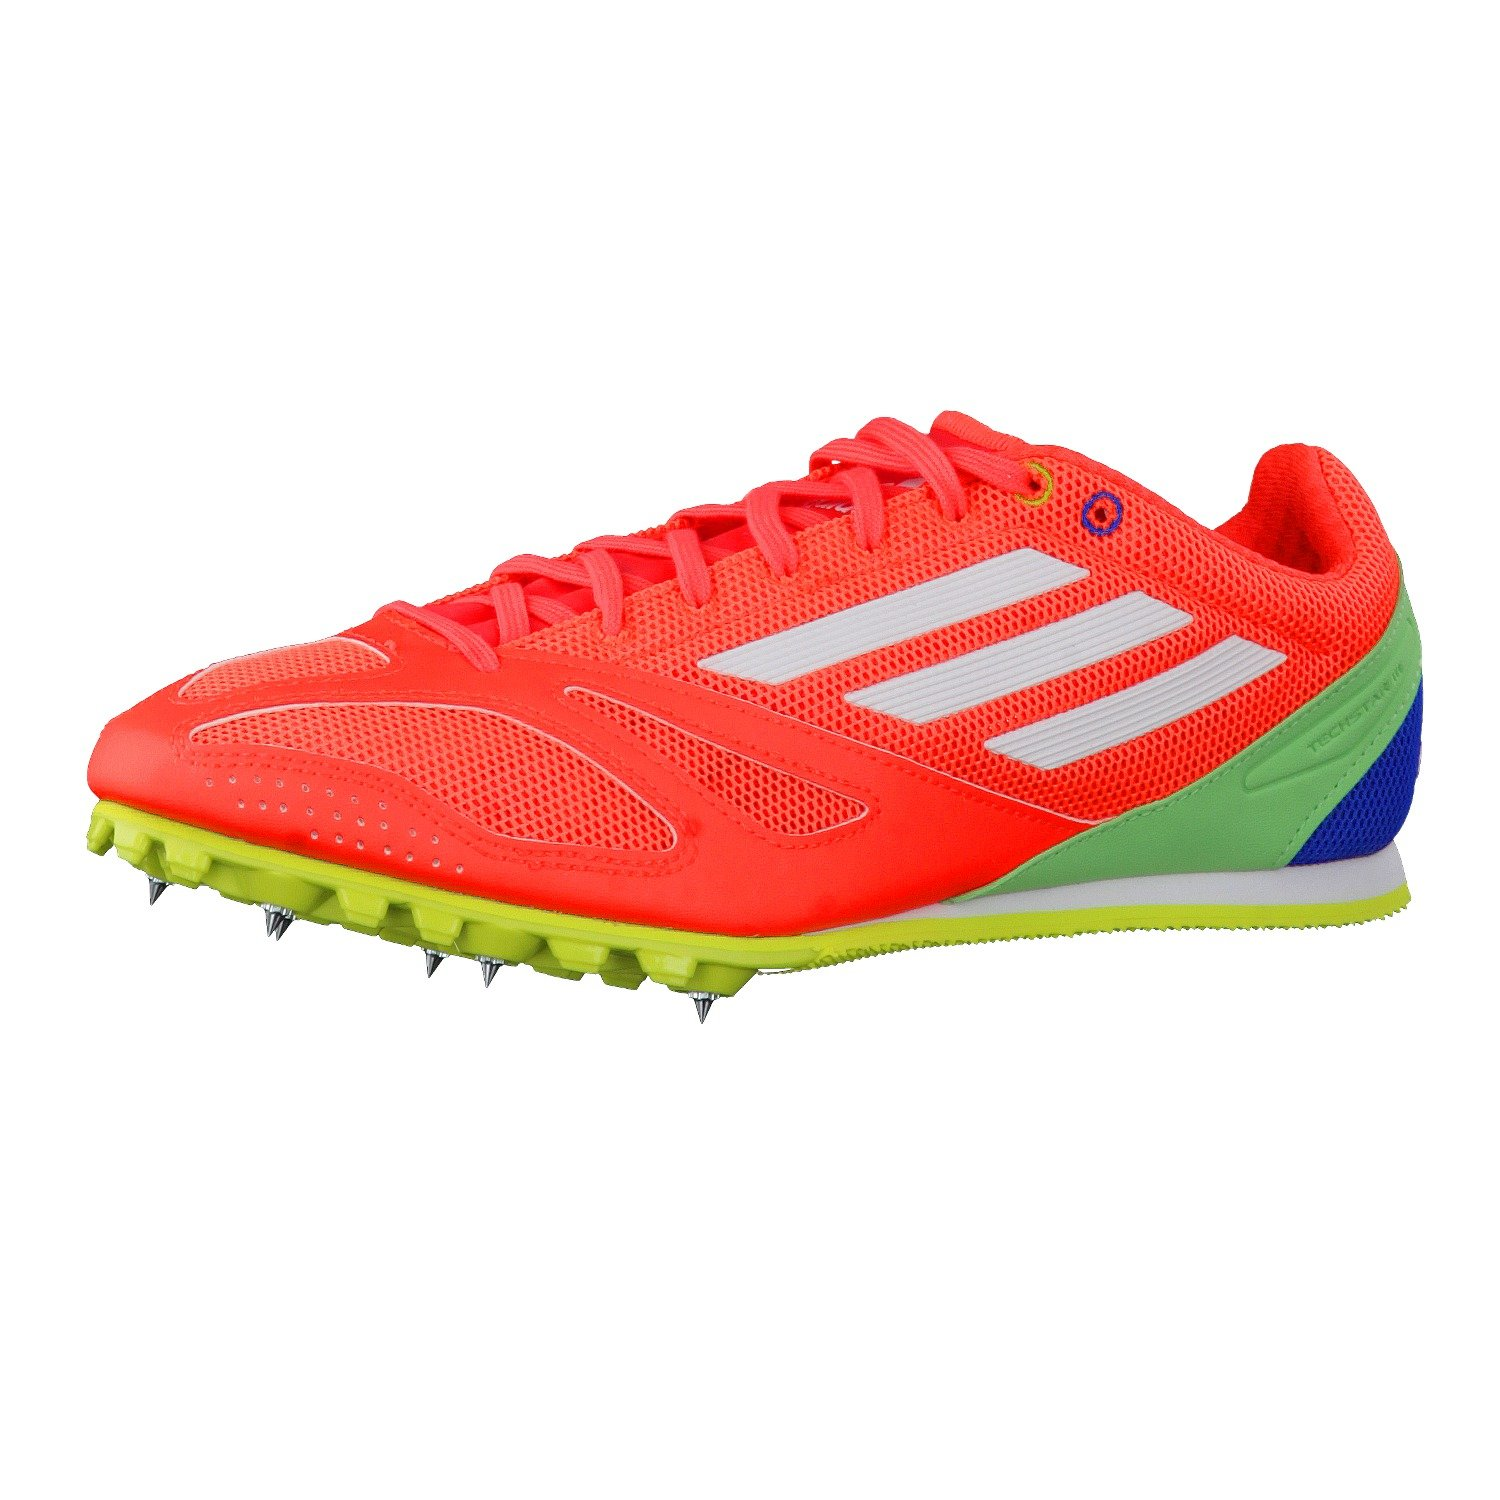 ventas al por mayor último a bajo precio barata adidas Techstar Allround 3 Running Spikes: Amazon.co.uk: Shoes & Bags